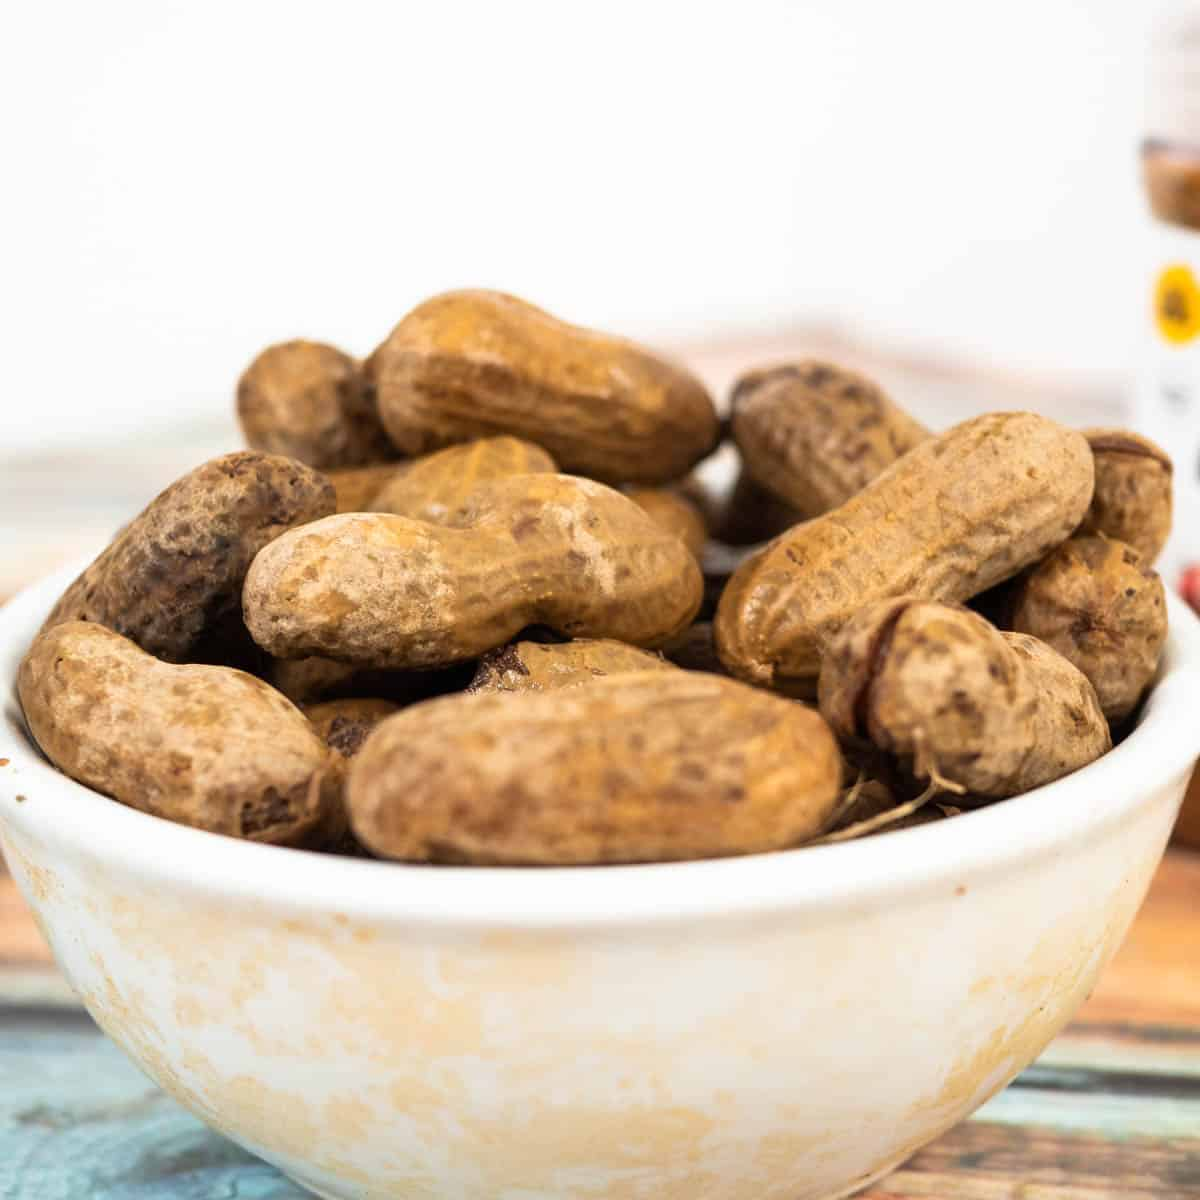 Boiled Peanuts ready to Eat